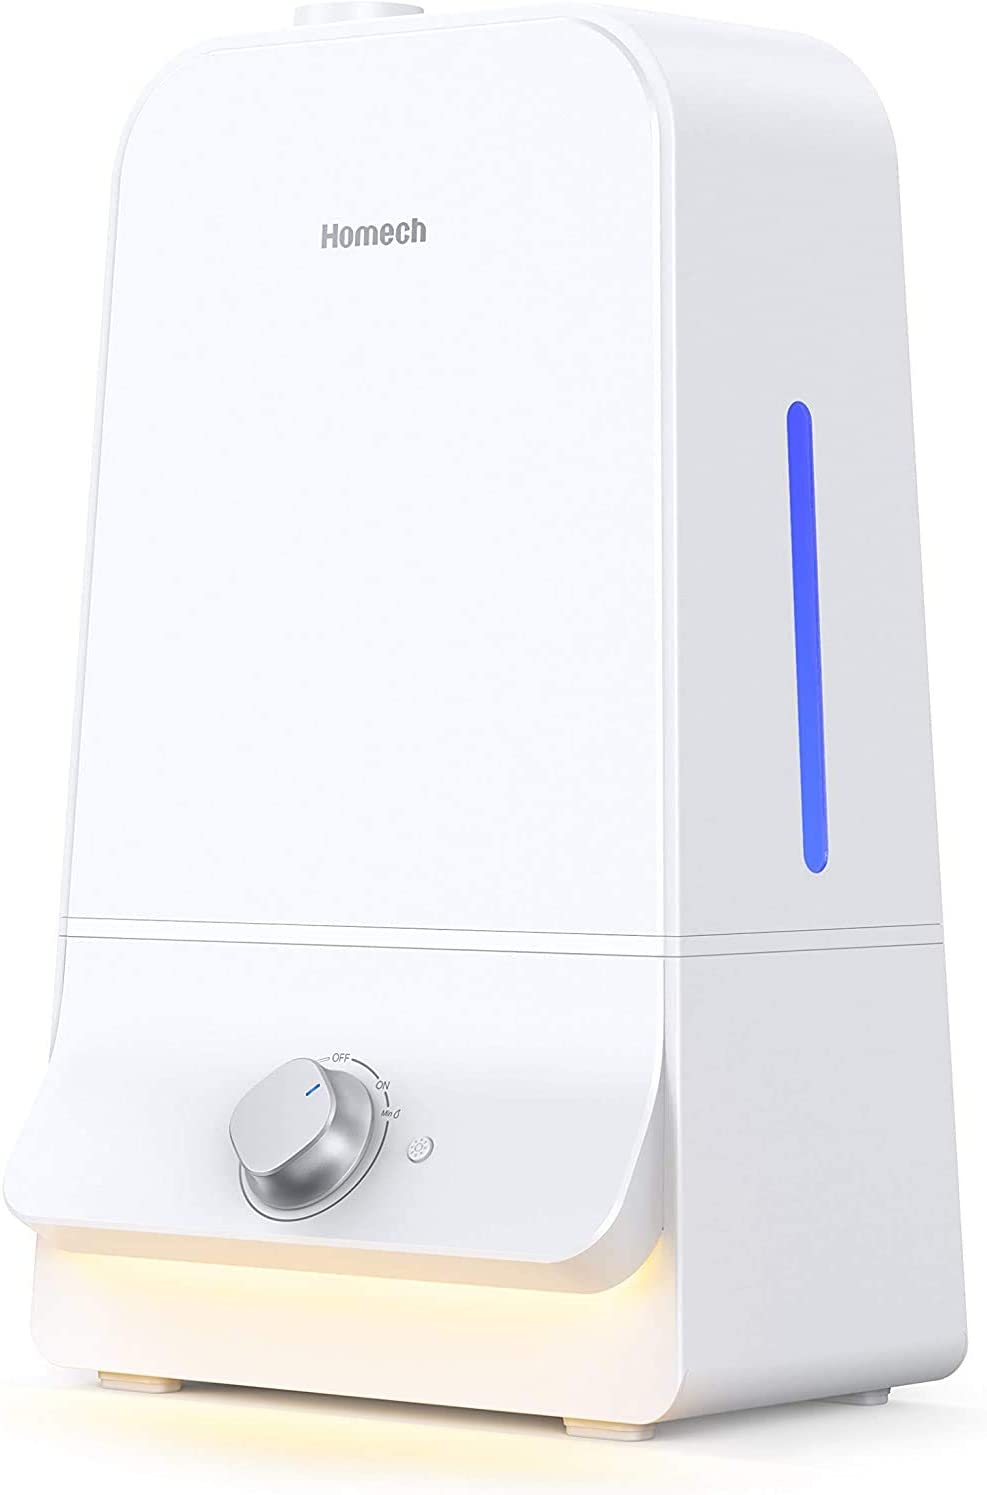 Homech Cool Mist Humidifiers, 6L /1.59 gal Quiet Ultrasonic Humidifier, for Large Bedroom Babies, 90mm Water Inlet, Night Light, Tank-Removal and Waterless Auto Shut-Off